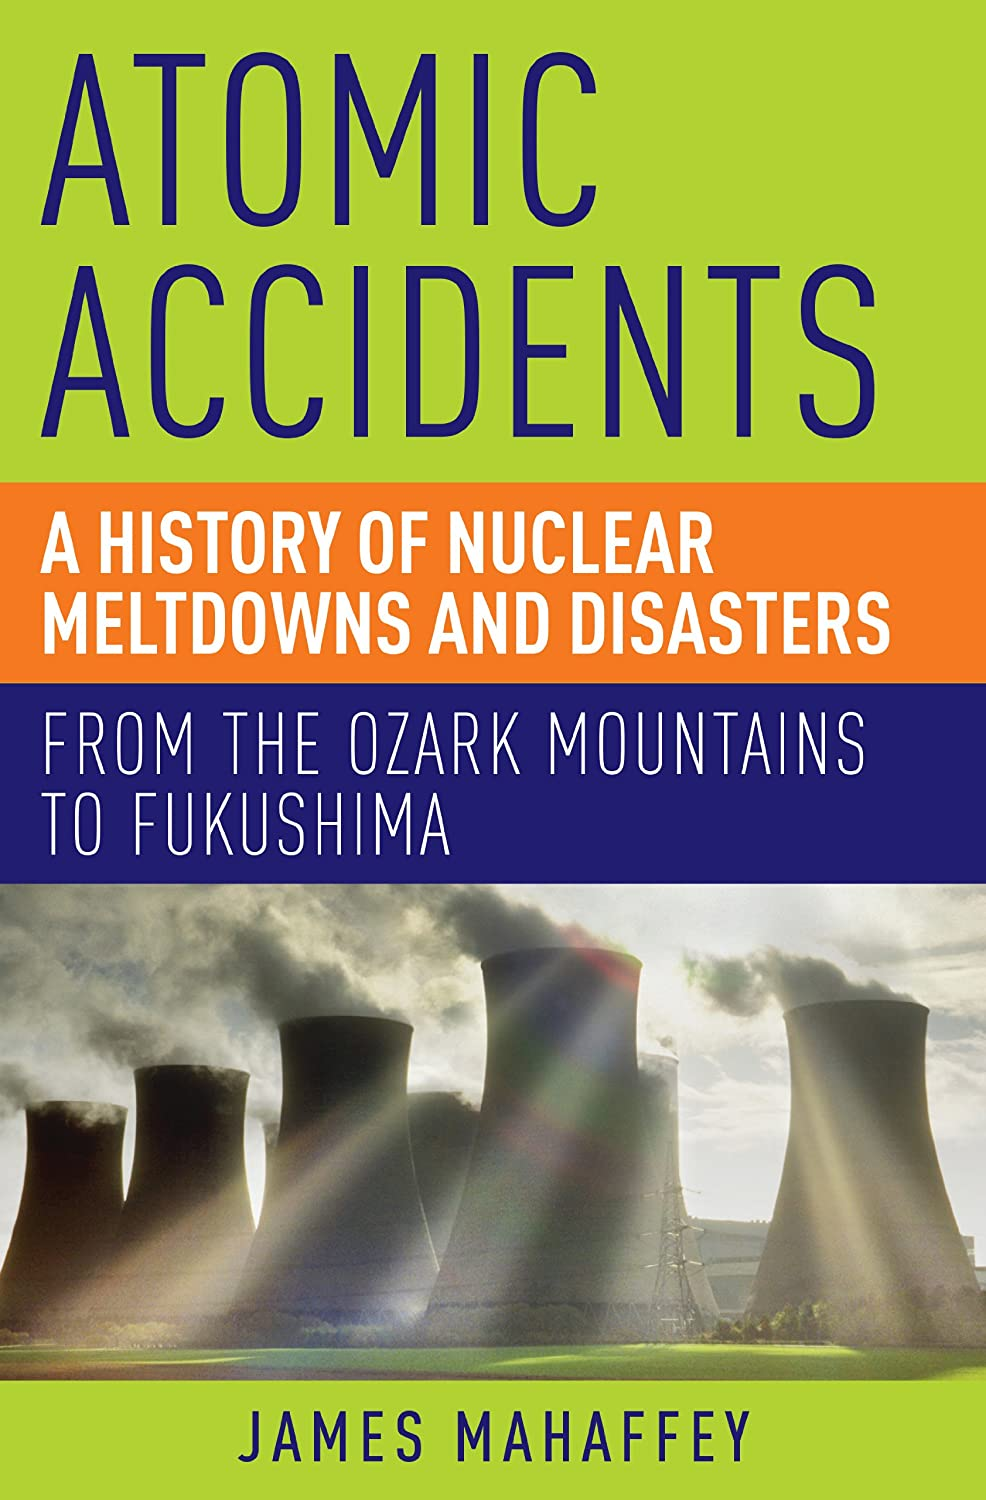 From the Ozark Mountains to Fukushima